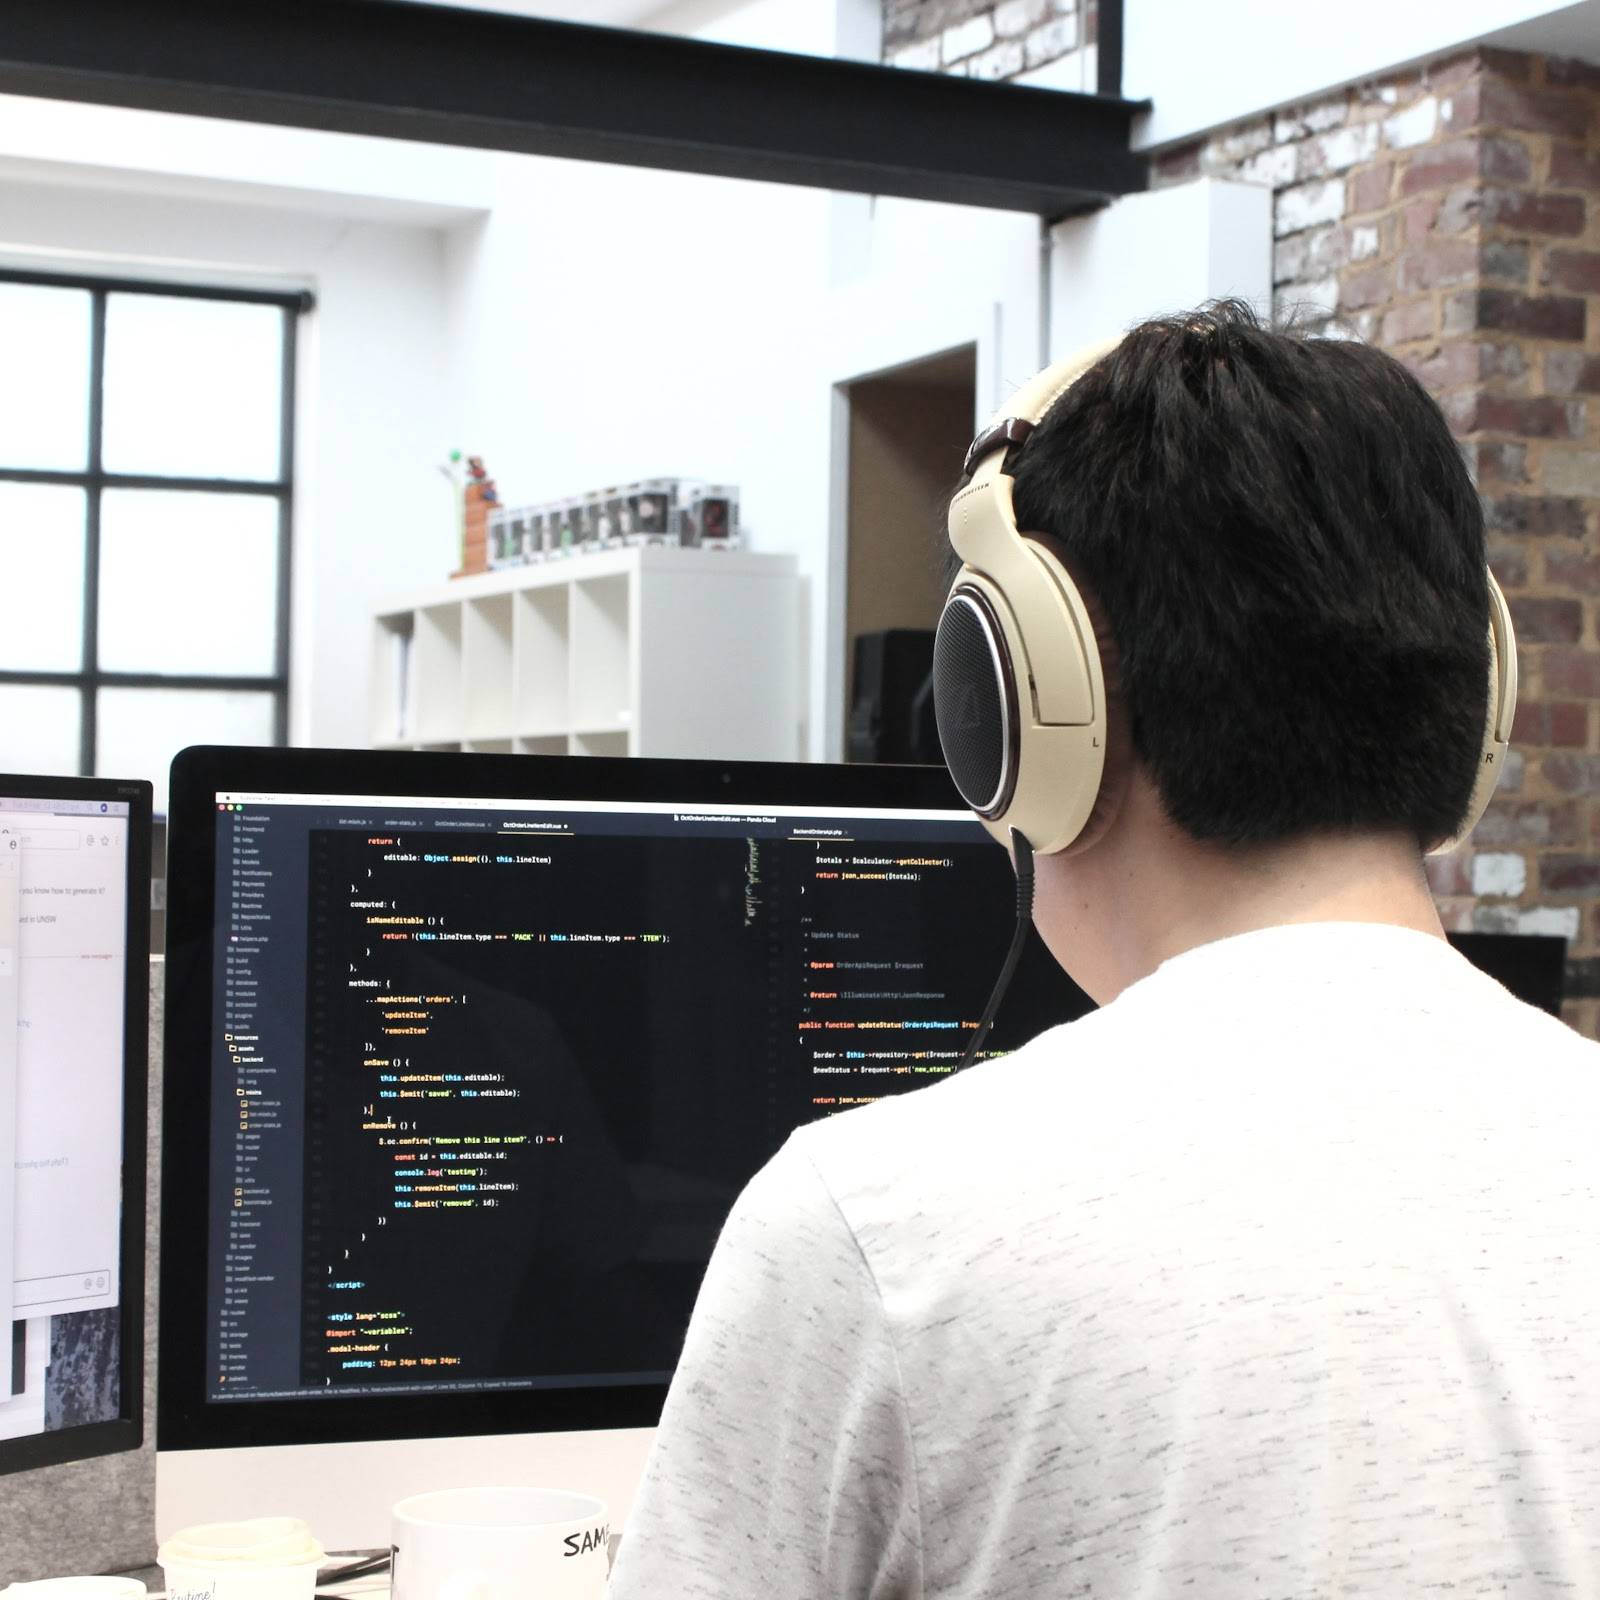 Man in white shirt wearing headphones and looking at computer monitor displaying code